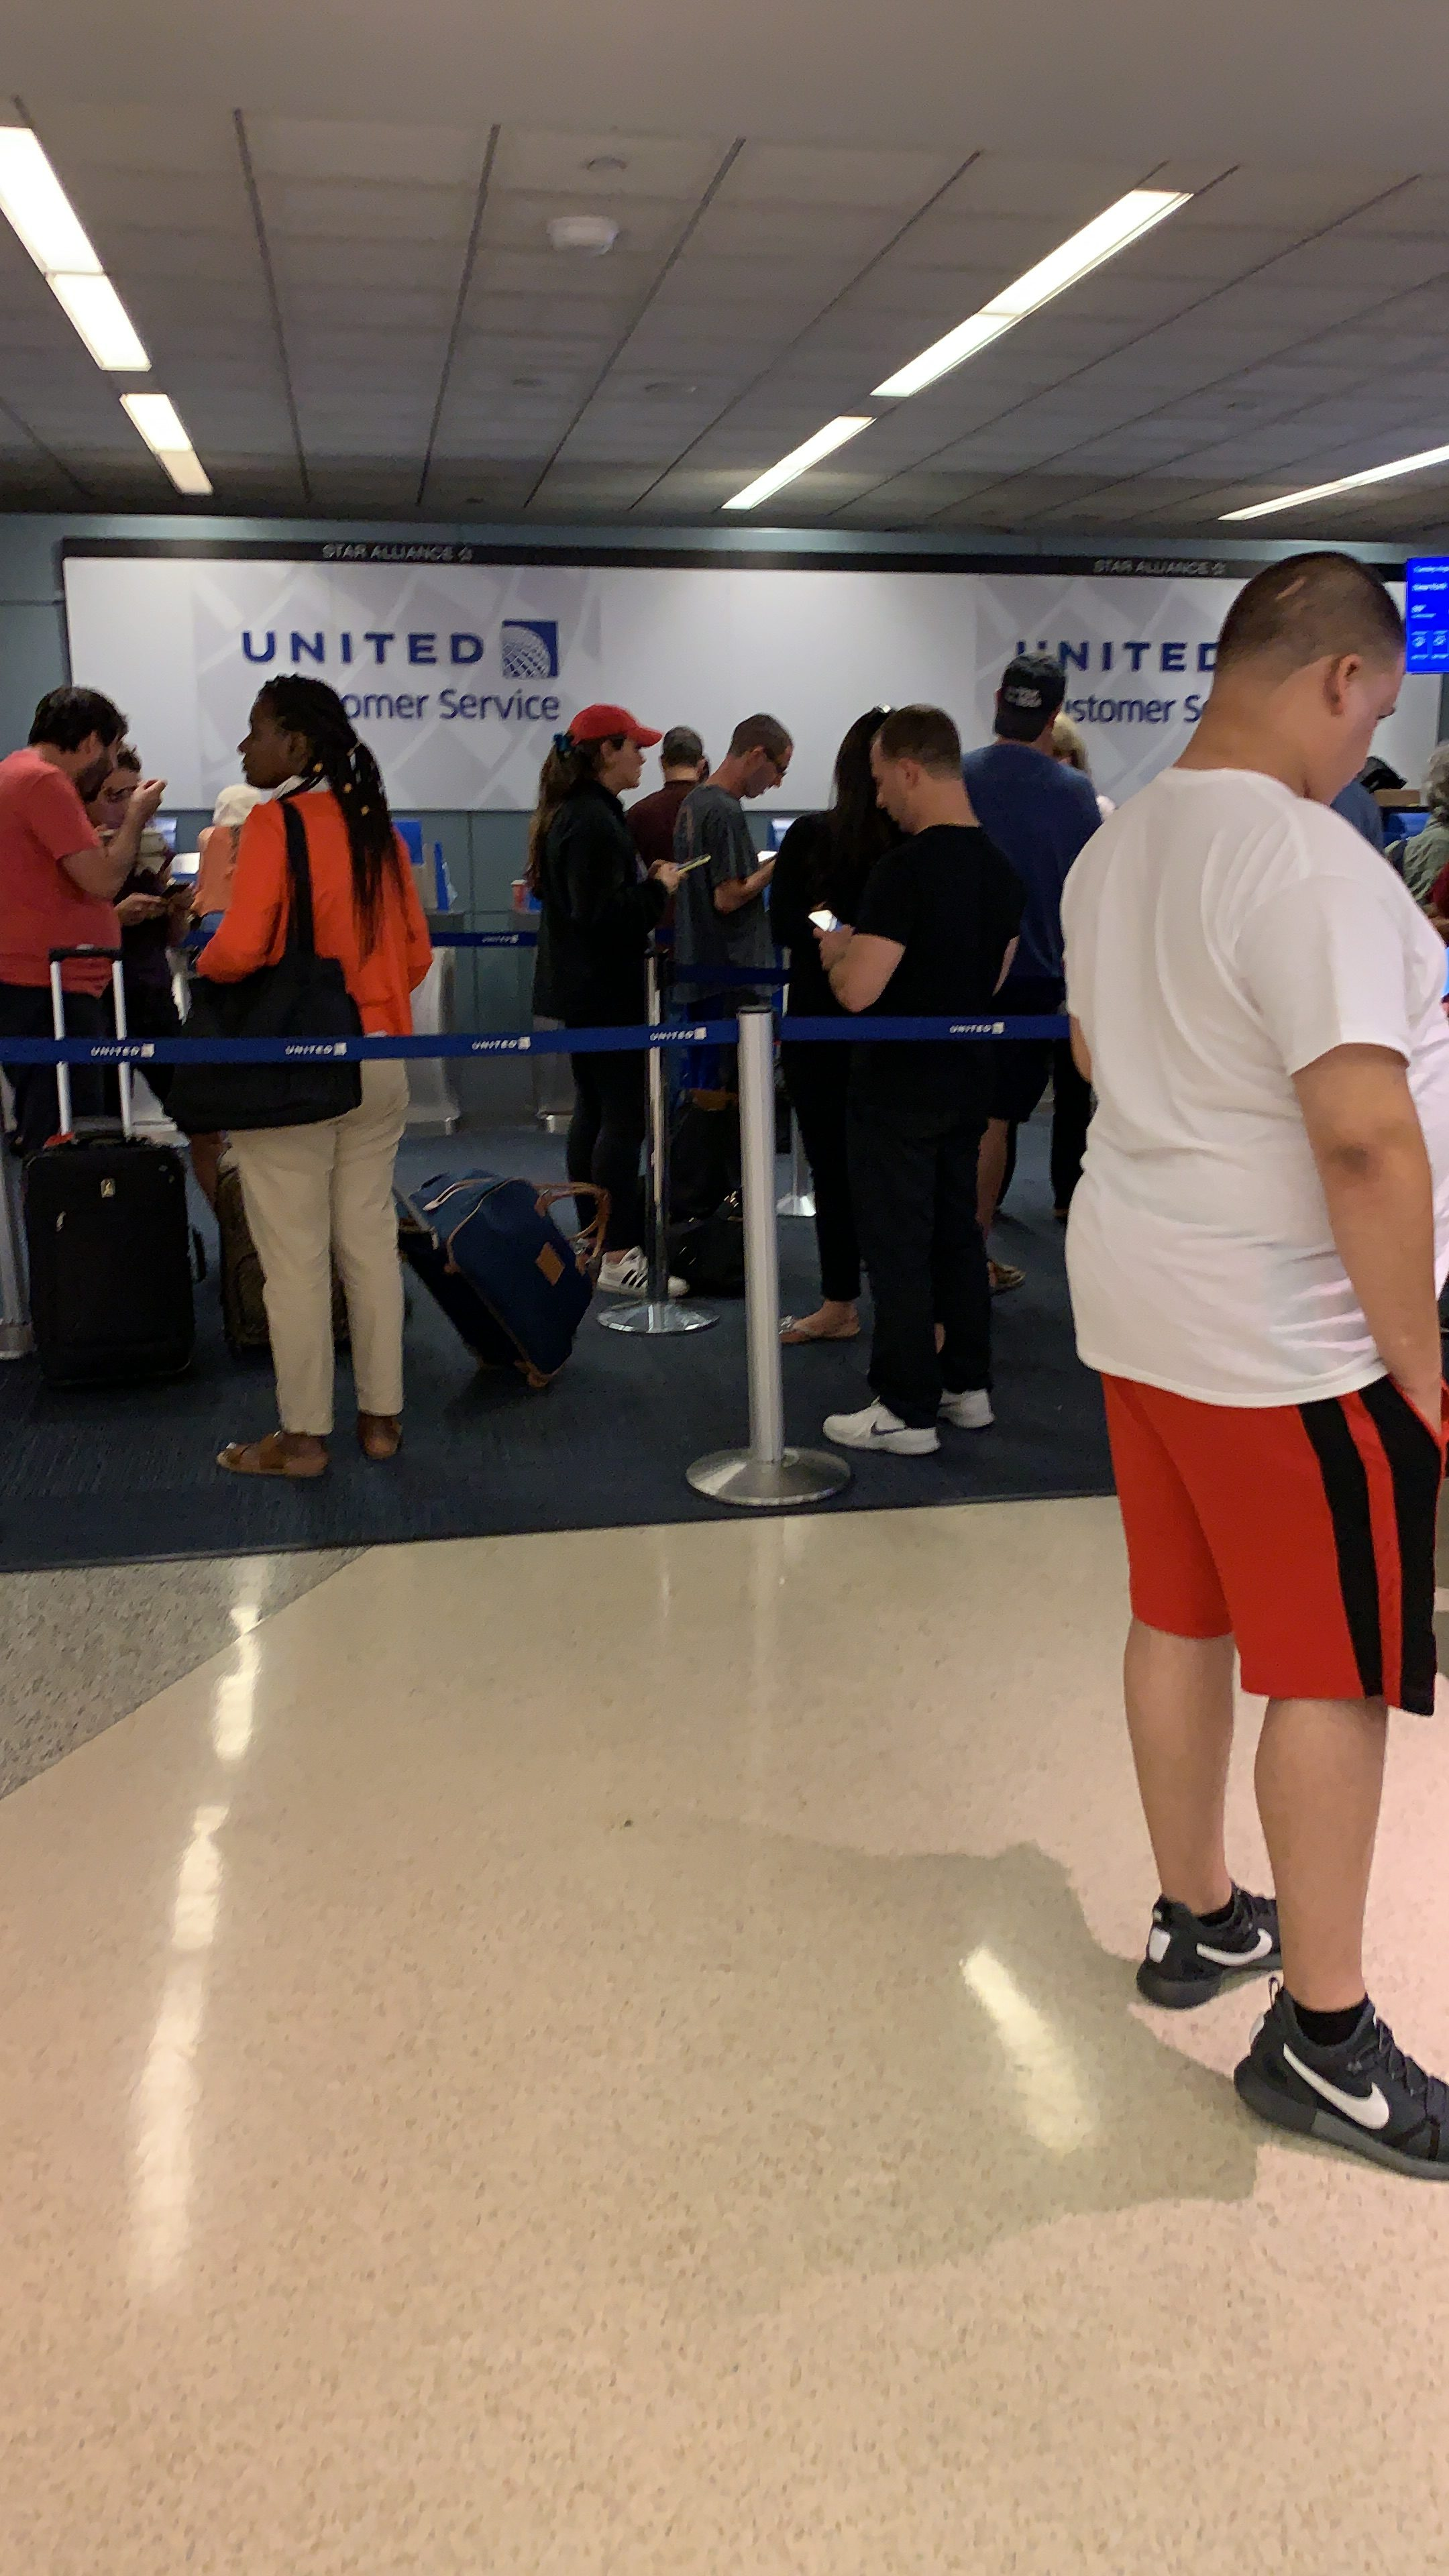 United Airlines Customer Reviews | SKYTRAX